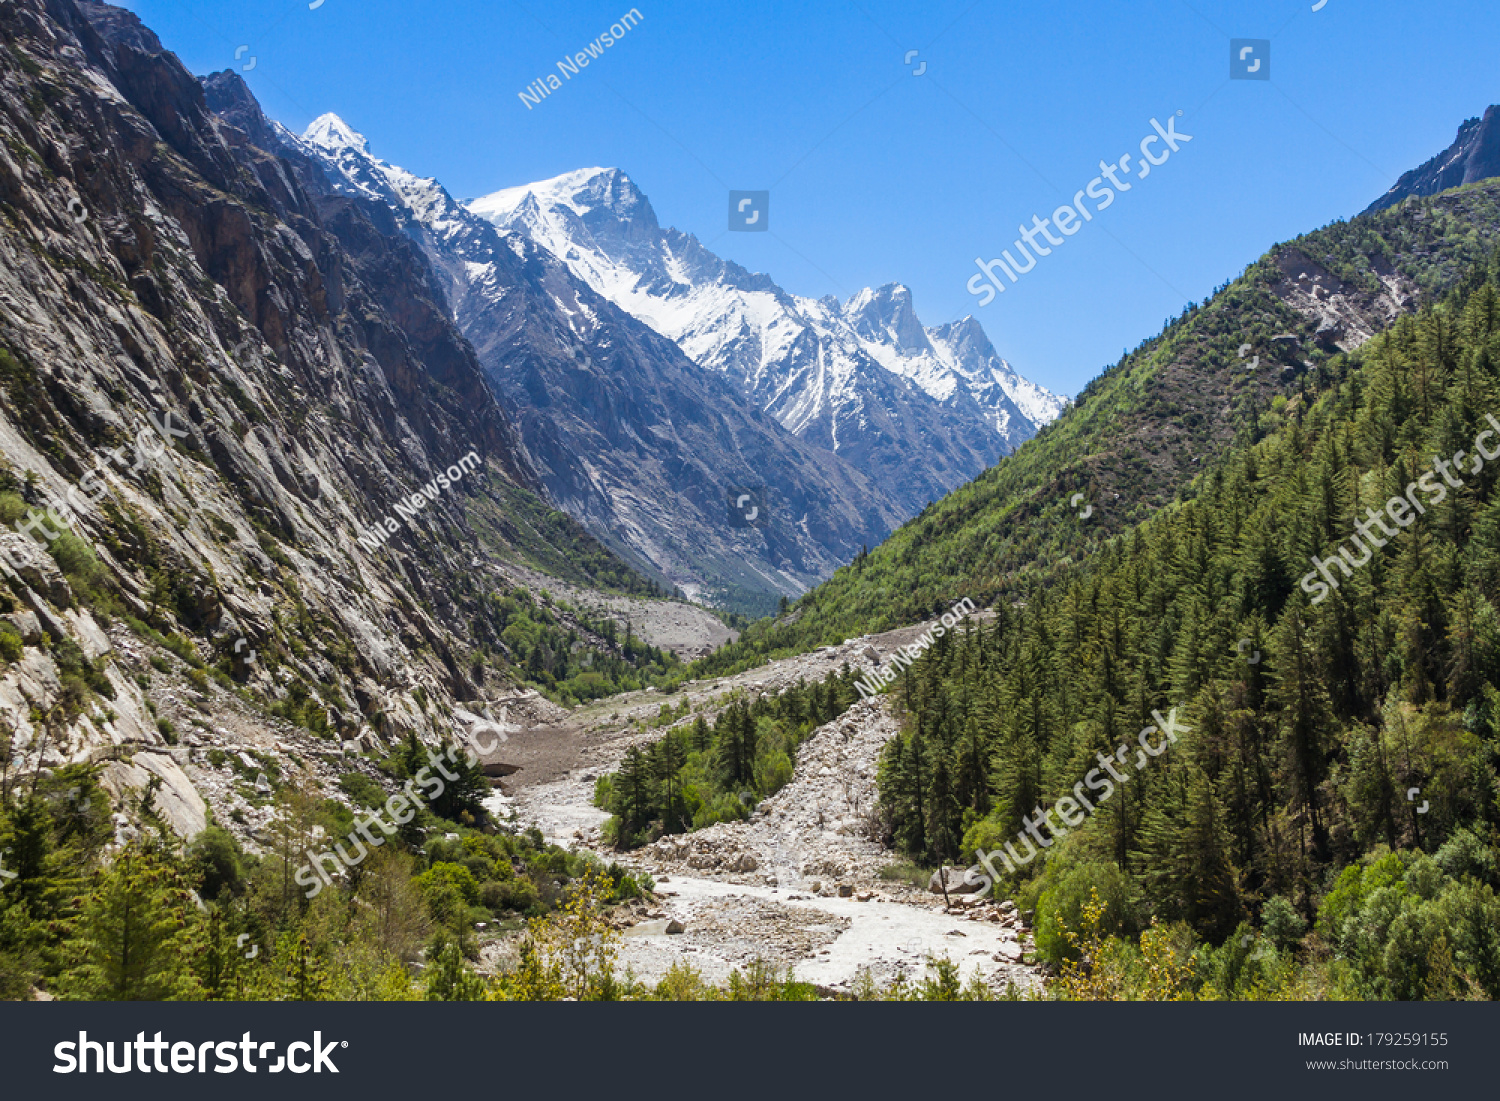 Ganges River Flowing Down Gangotri Valley Stock Photo ...